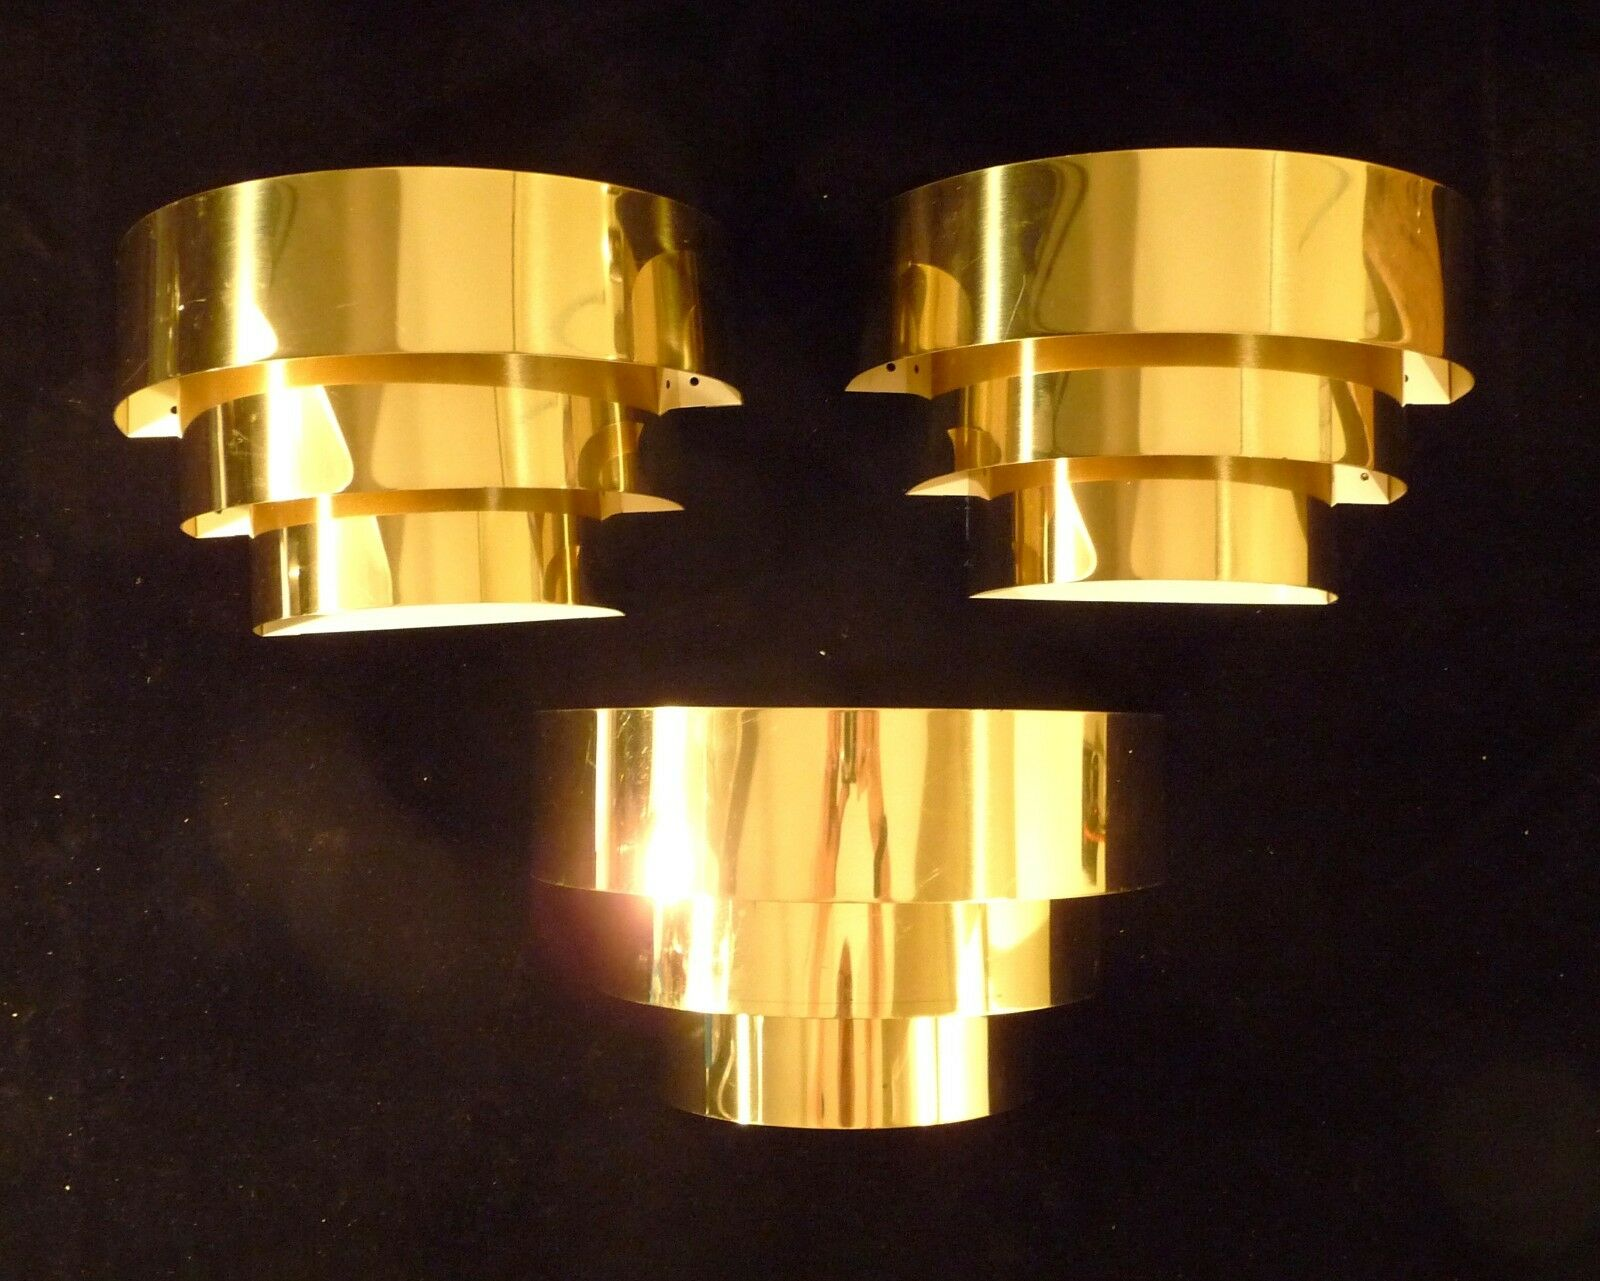 ART DECO REVIVAL STEPPED BRASS WALL SCONCES LIGHTS 1 of 3 - $245.00 ...